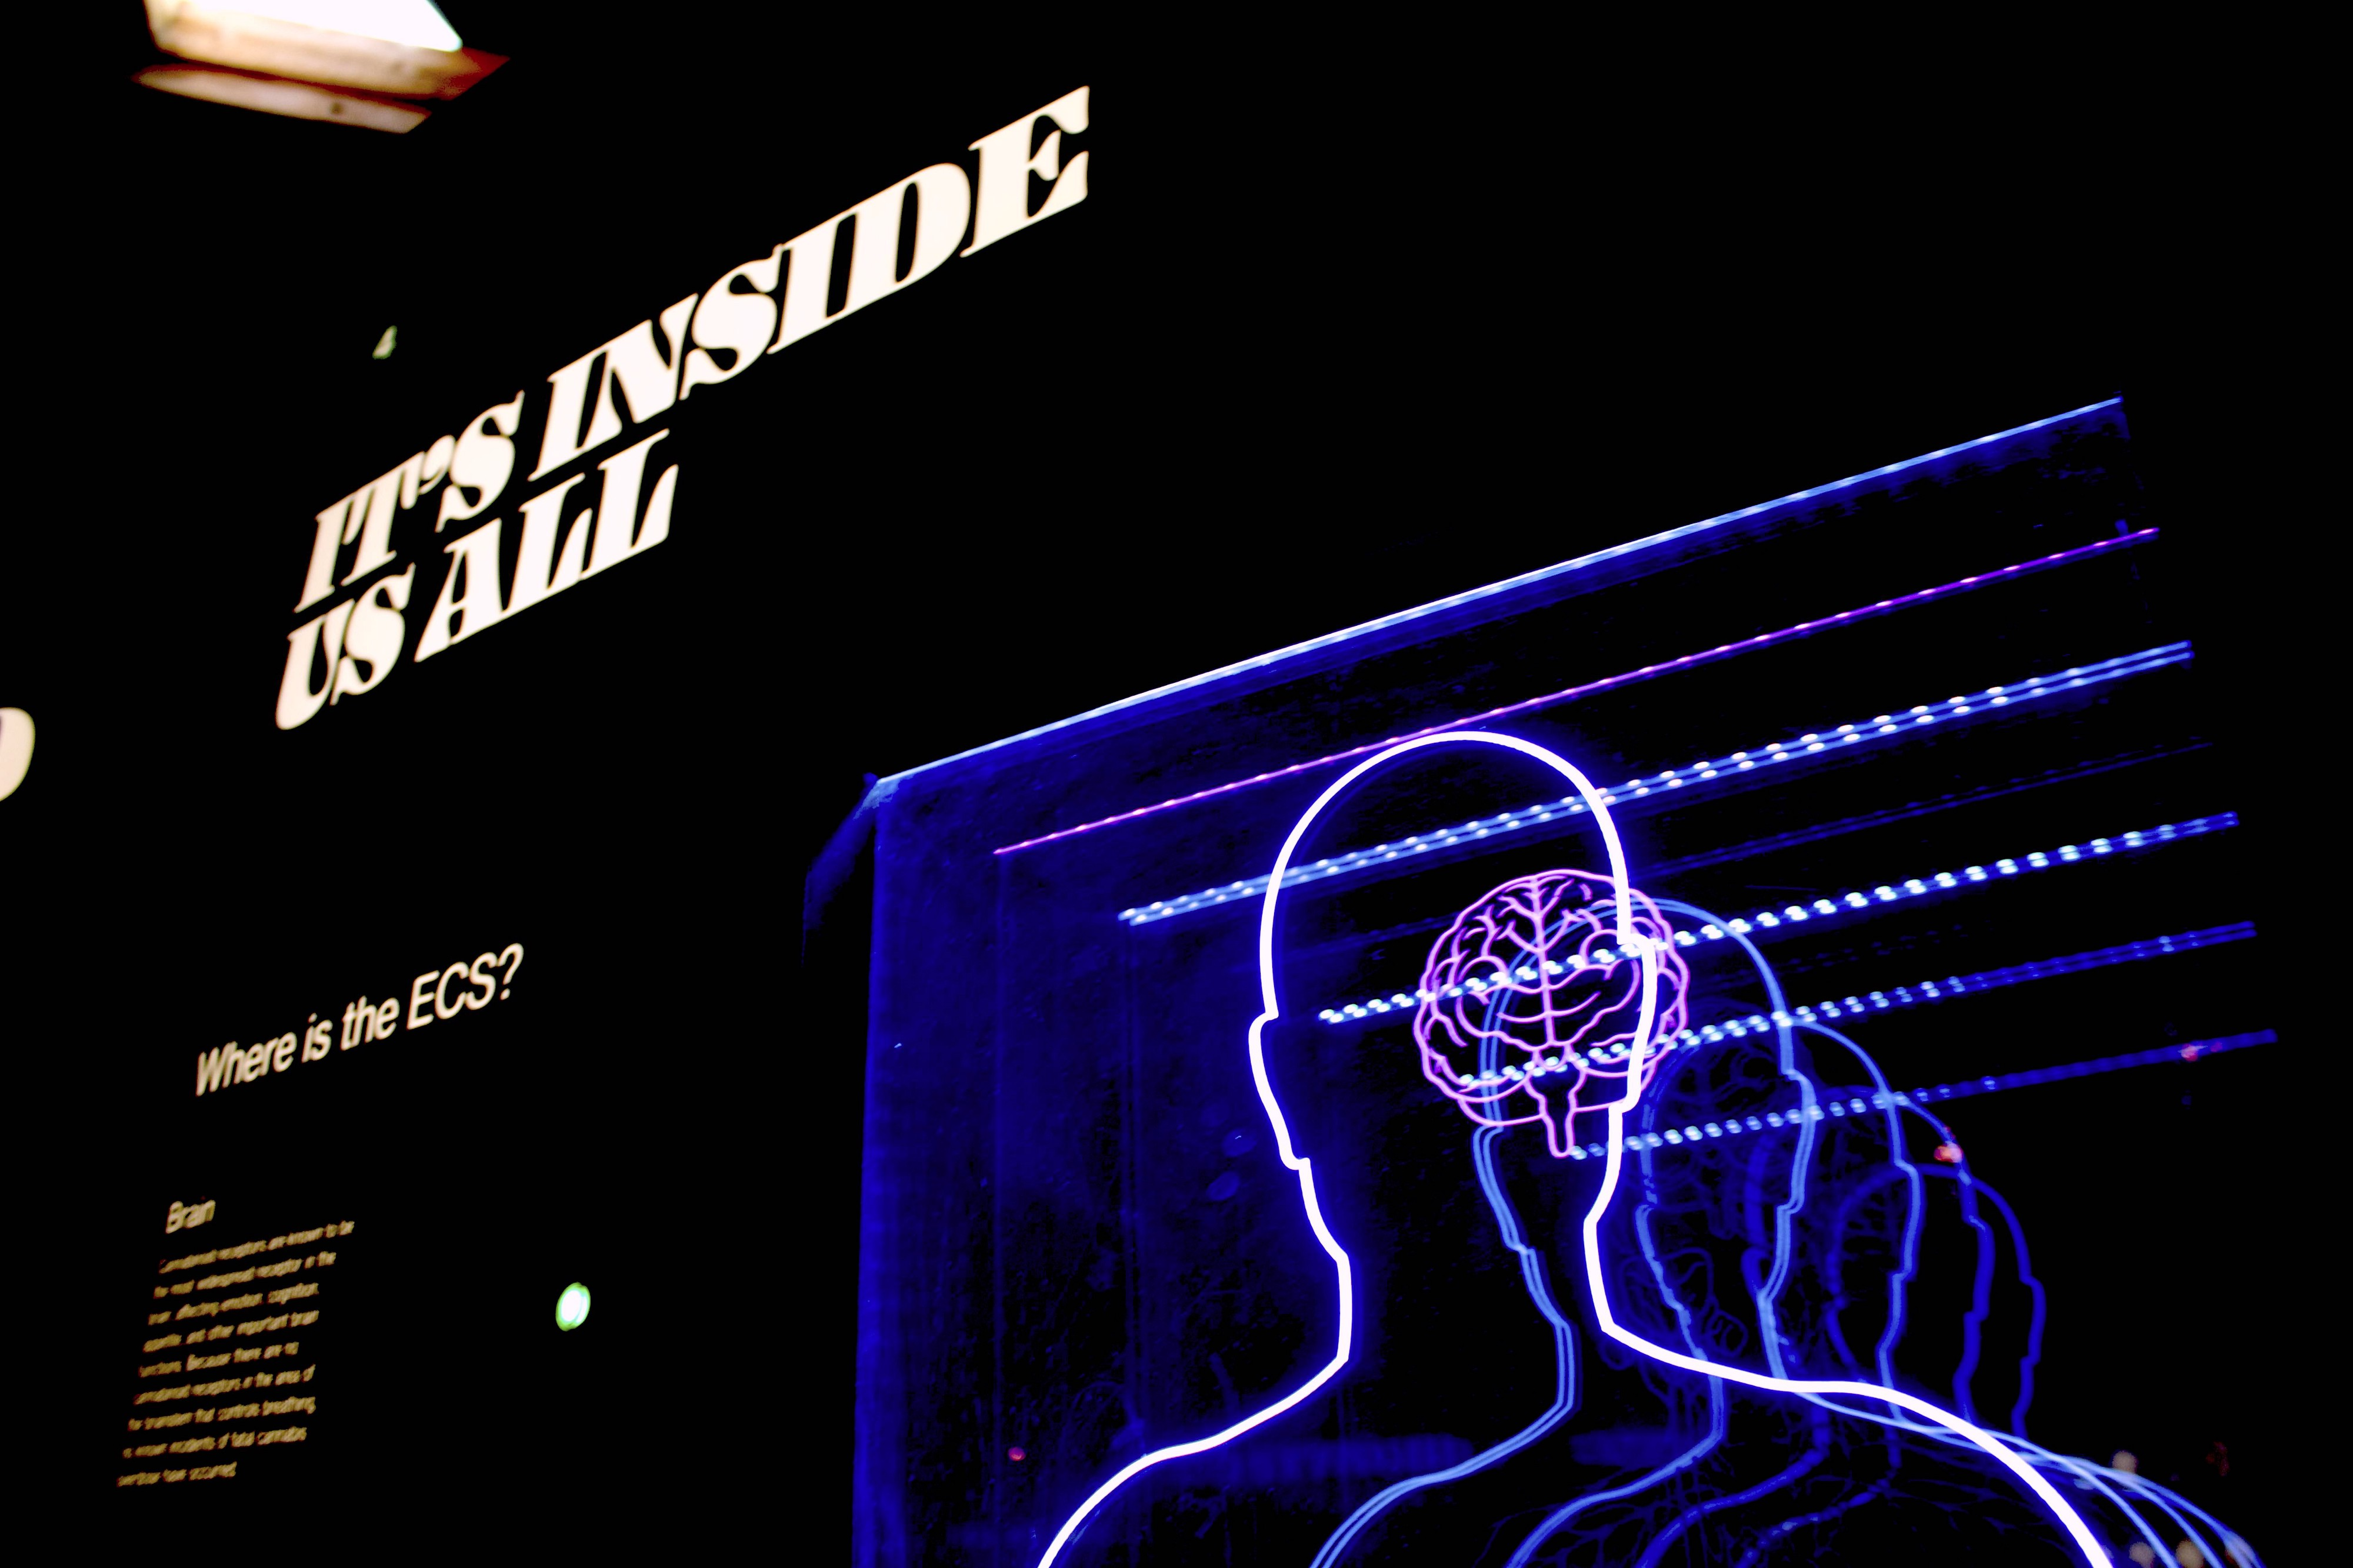 """A sign reading """"IT'S INSIDE US ALL,"""" above a neon model of a brain. I am not convinced this sign is correct."""